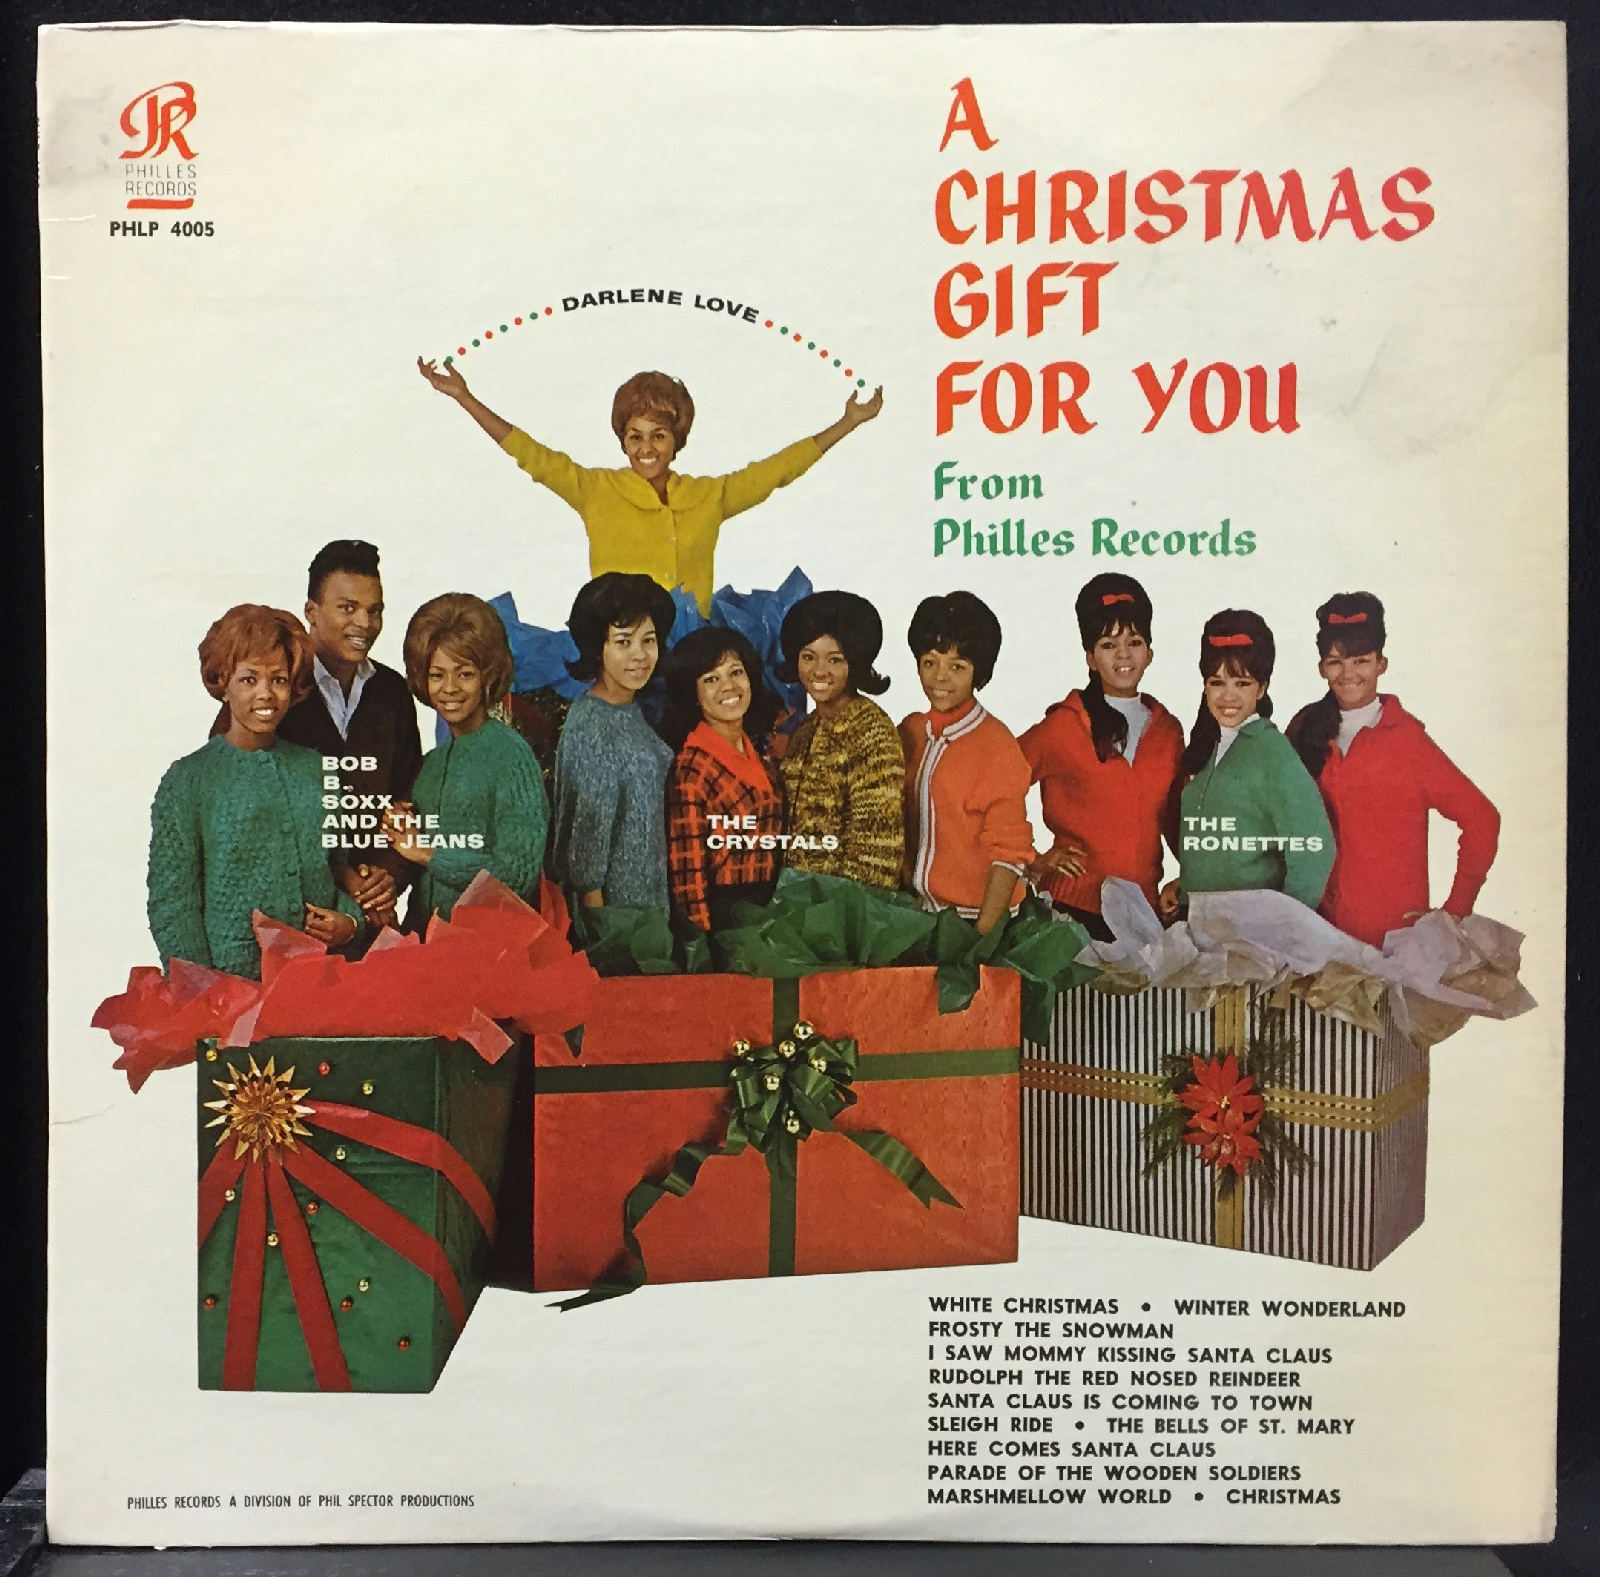 A Christmas Gift For You From Phil Spector.Details About Phil Spector Crystals Ronettes A Christmas Gift For You Lp Vg 1963 Usa Phlp 4005